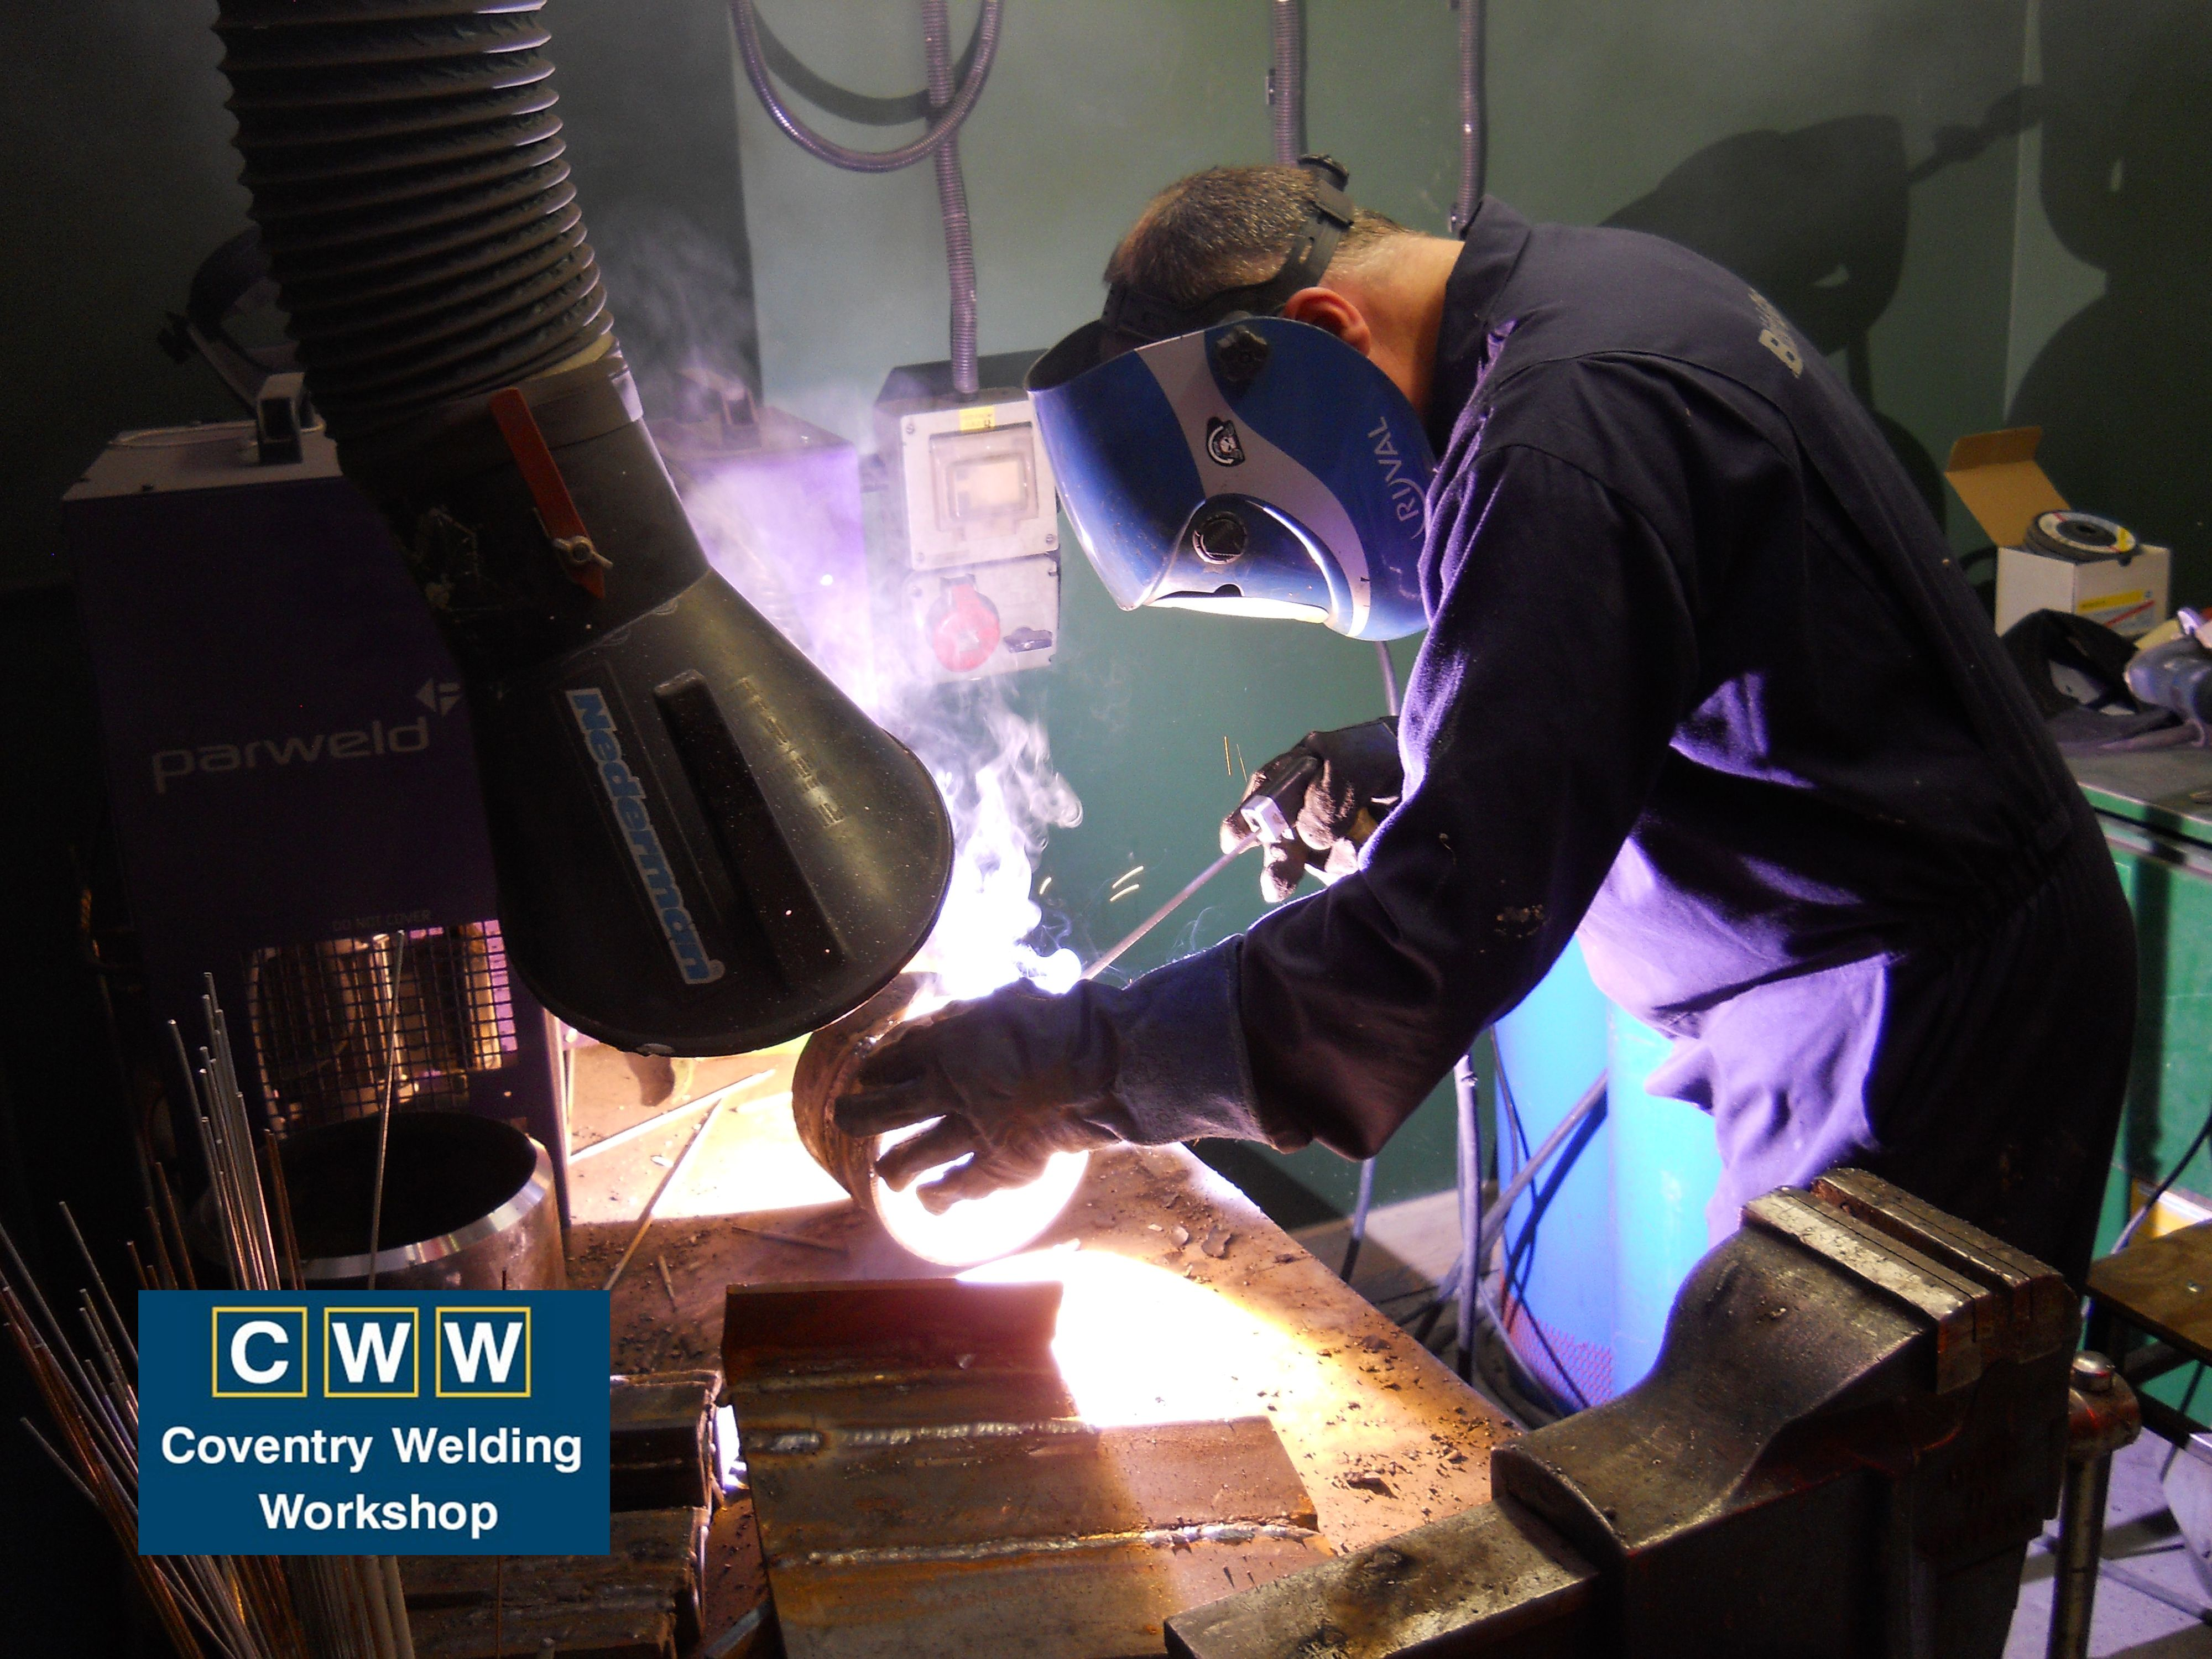 #WeldingTraining during our Basic #MIGWeldingCourse Learn more about our Basic #WeldingCourse on our #CoventryWeldingWorkshop website http://www.coventryweldingworkshop.co.uk/index.php?page=basic-welding-course Find Offers at our #WeldingCourses  http://www.coventryweldingworkshop.co.uk #WelderTraining #WelderCourse #WelderCourses #MigWeldingCourses #MigWeldingTraining #Welding #Welds #Weld #DIYWelding #WeldingSkills #MigWelding #Gmaw #MigWeld #GmawWelding #MagWelding #WeldingProcesses